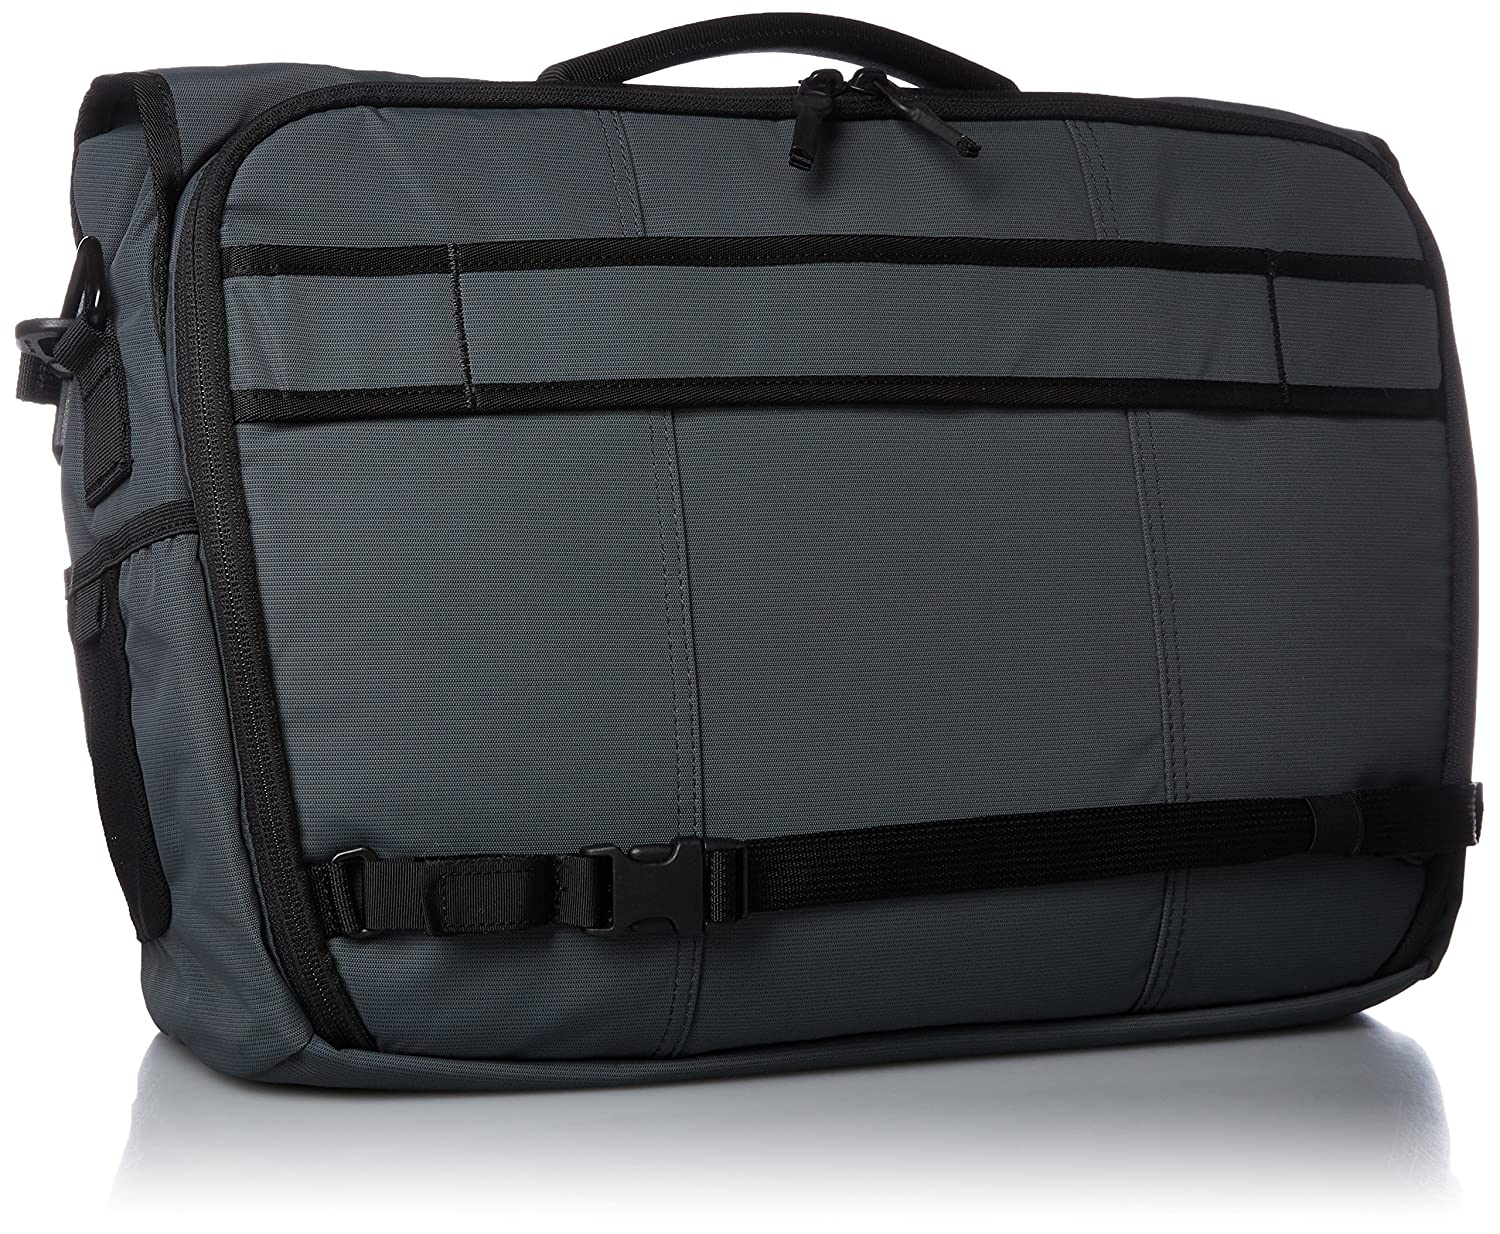 Timbuk2 Commute Messenger Bag